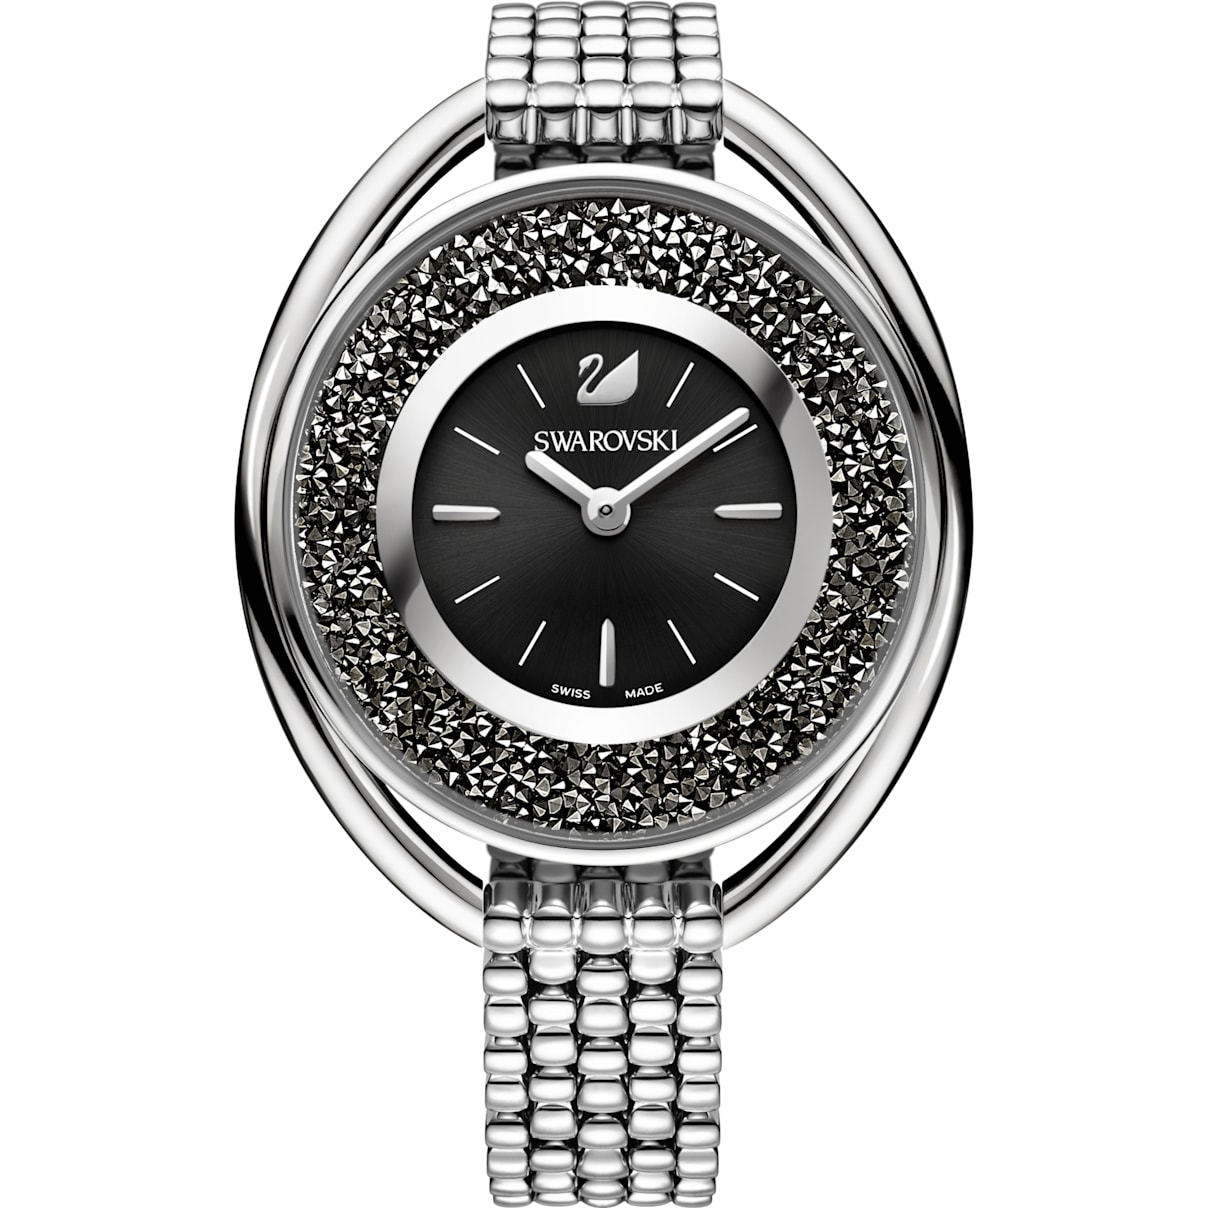 Swarovski Crystalline Oval Watch, Metal bracelet, Black, Silver tone